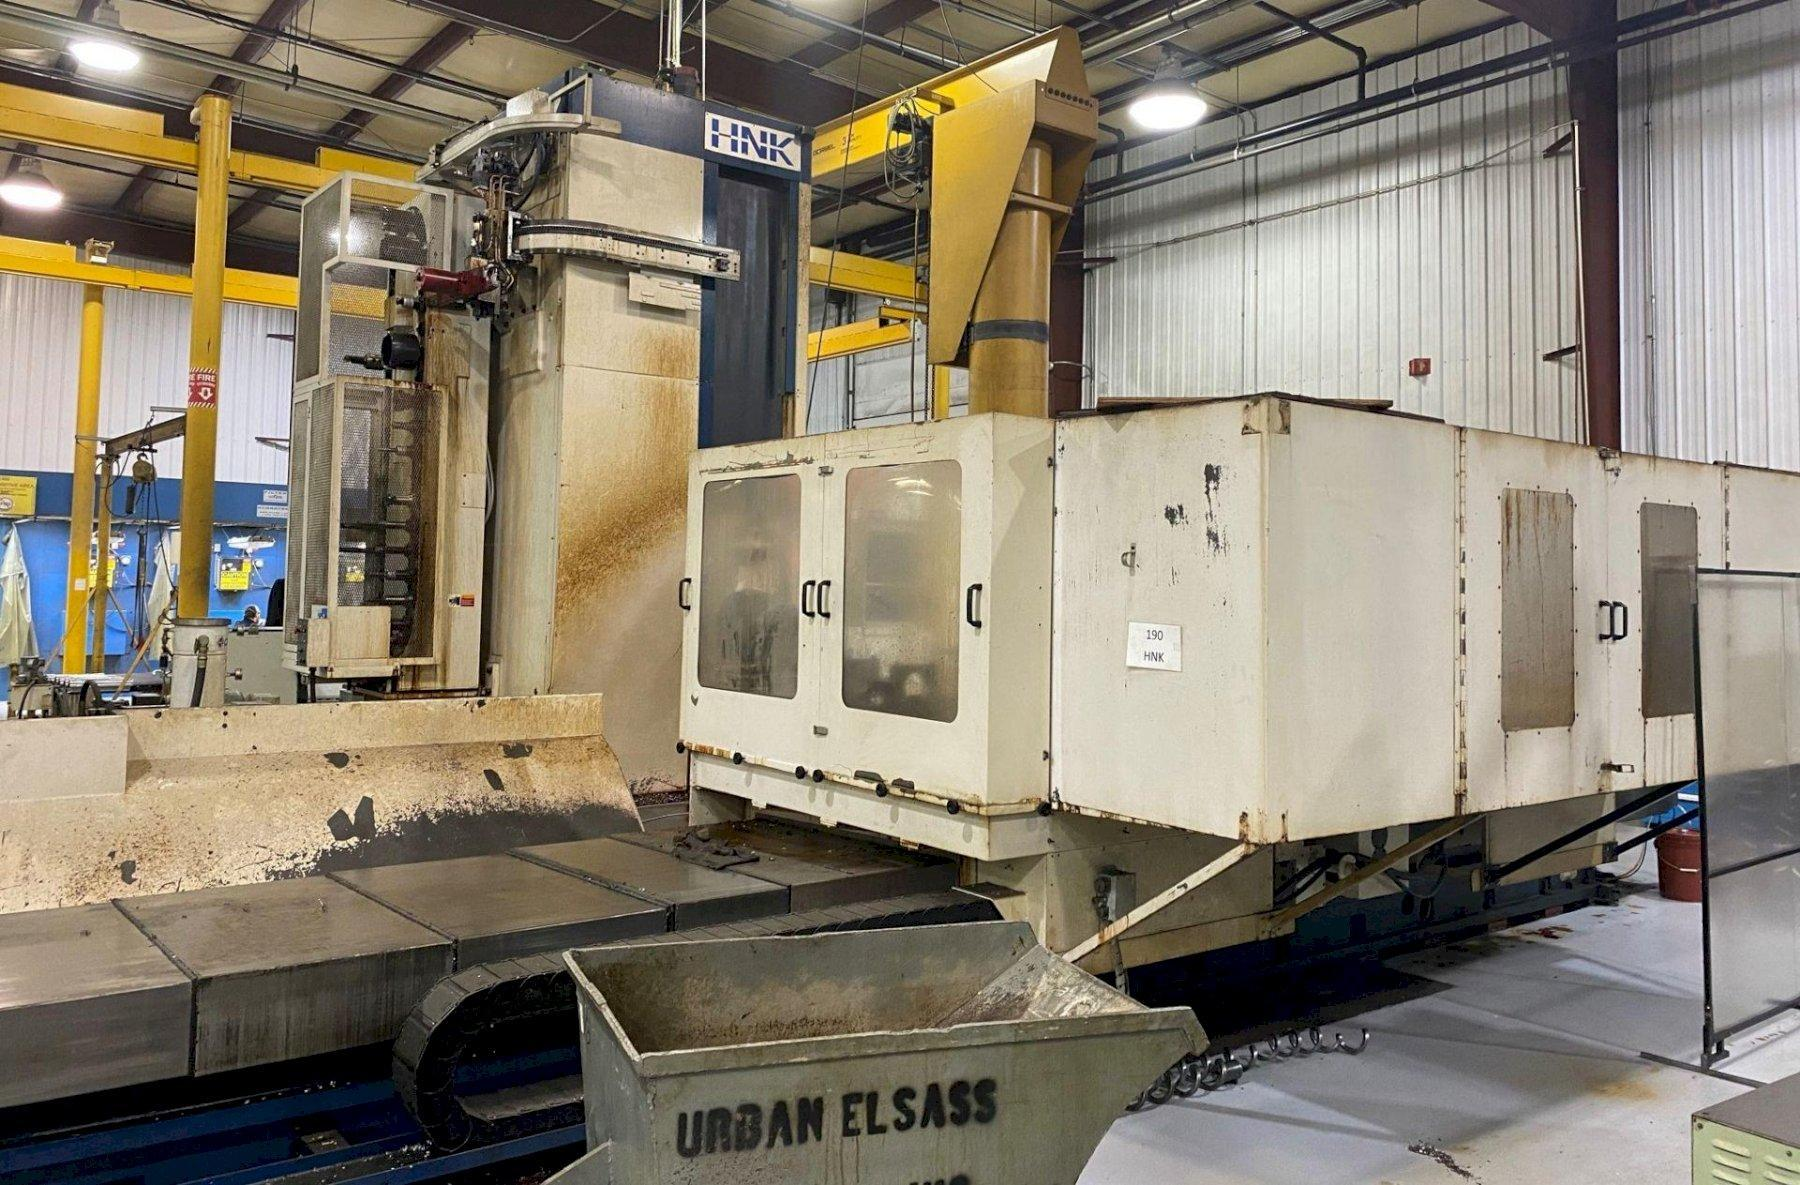 "HNK HB-130CX HORIZONTAL BORING MILL, Fanuc 16M CNC Control, 63"" x 157"" Table with a 63""x 63"" Rotary Table, X-Axis Travel 157"", Y-Axis Travel 91"", Z-Axis Travel 51"", W-Axis Travel 27"", 2500 Spindle RPM, New 2000."